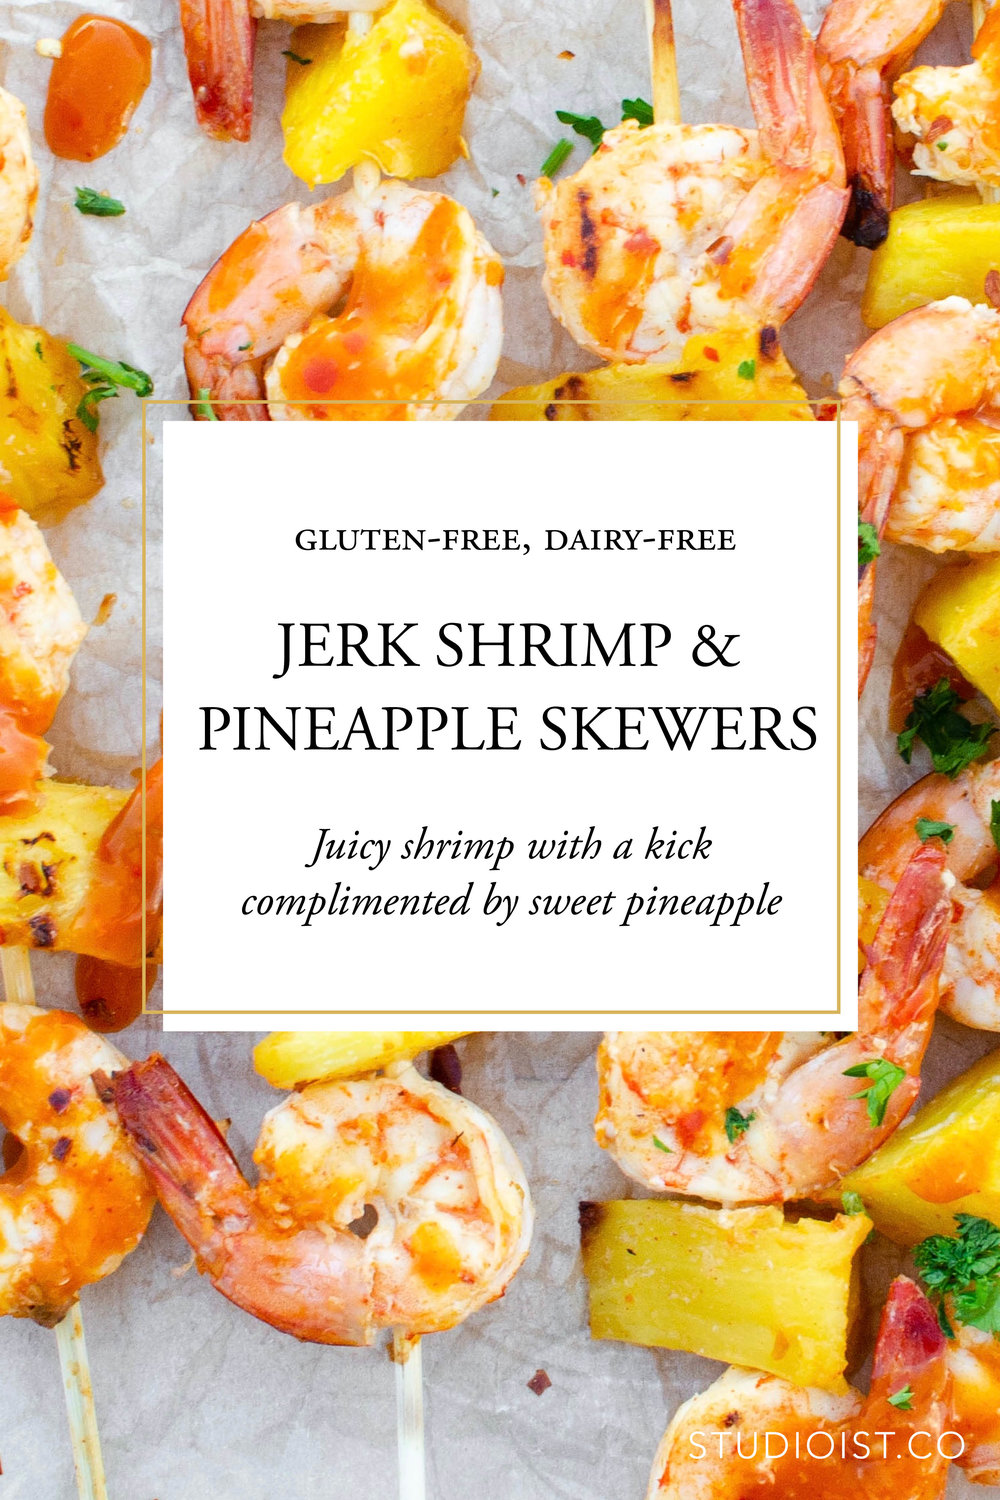 Studioist_Pinterest Design_Jerk Shrimp Skewers2.jpg